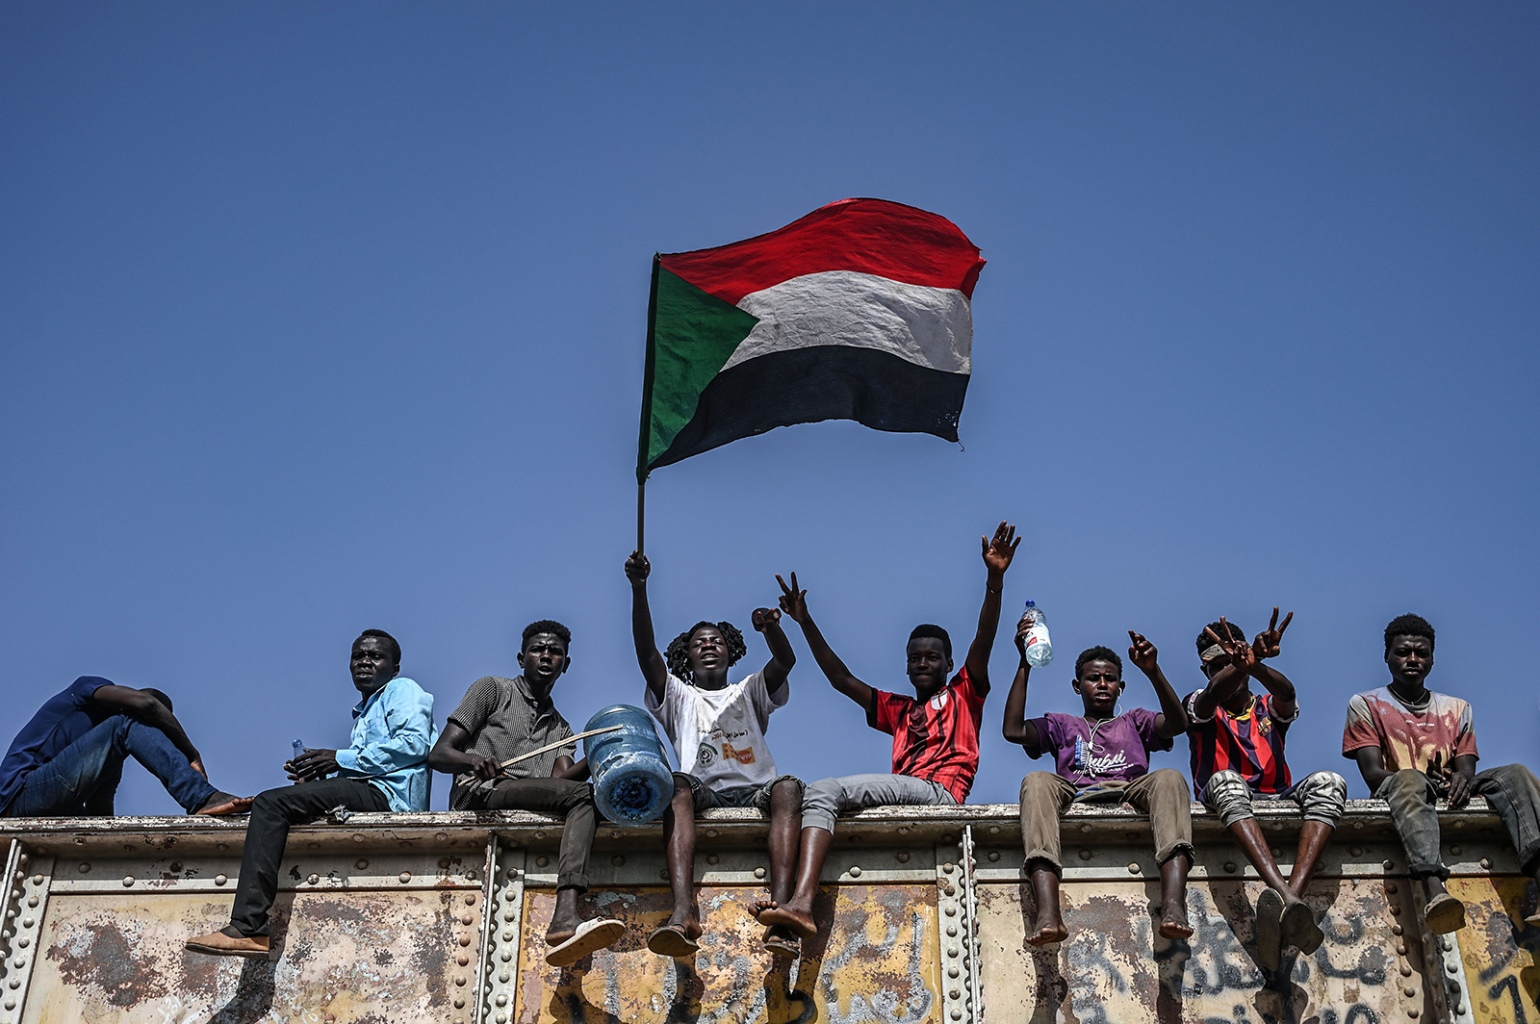 Sudanese protesters fly their national flag during a sit-in outside the army headquarters in Khartoum on April 29. OZAN KOSE/AFP/Getty Images